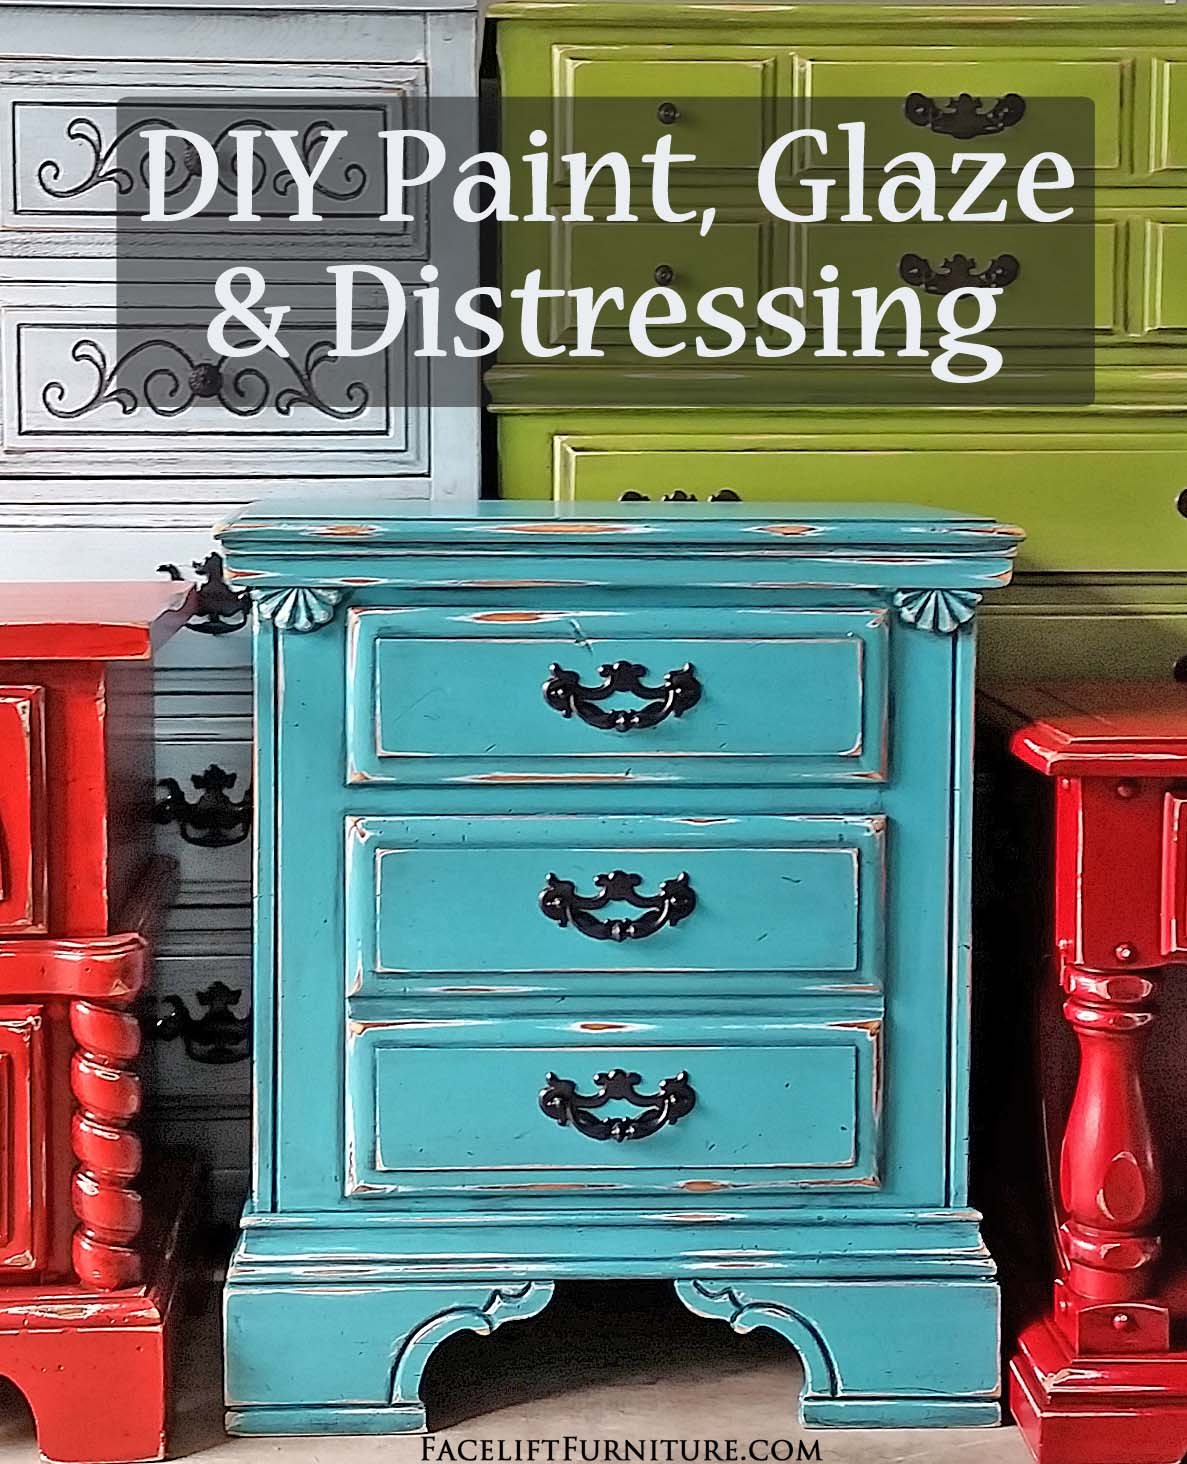 Painting furniture ideas distressed - Diy Paint Glaze Distressing Ideas Inspiration From Facelift Furniture